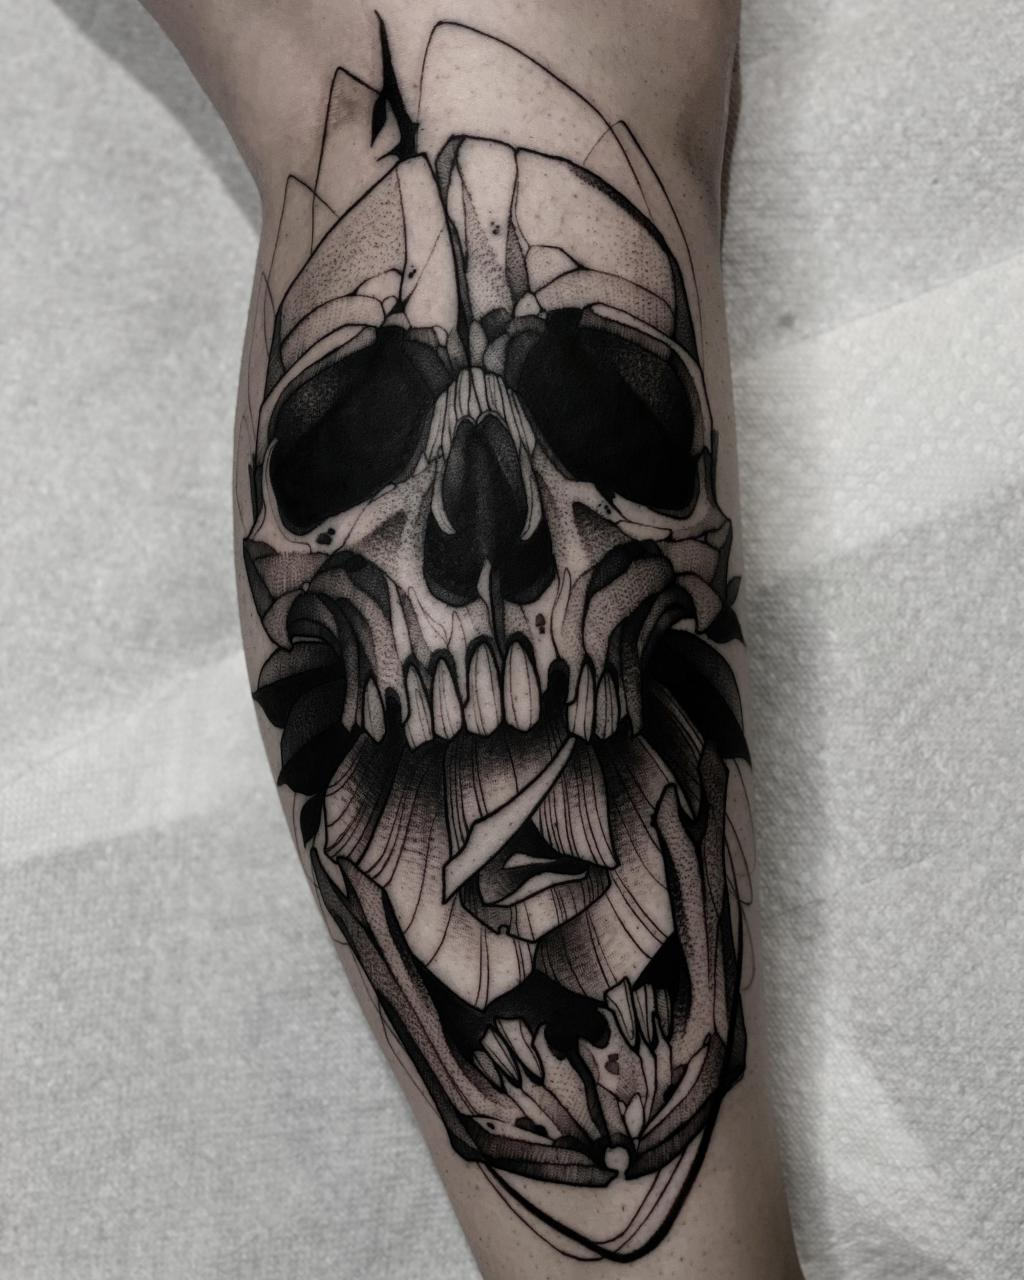 Calf piece done today by me (Max LaCroix) from Empire Inks Studio in Appleton, WI